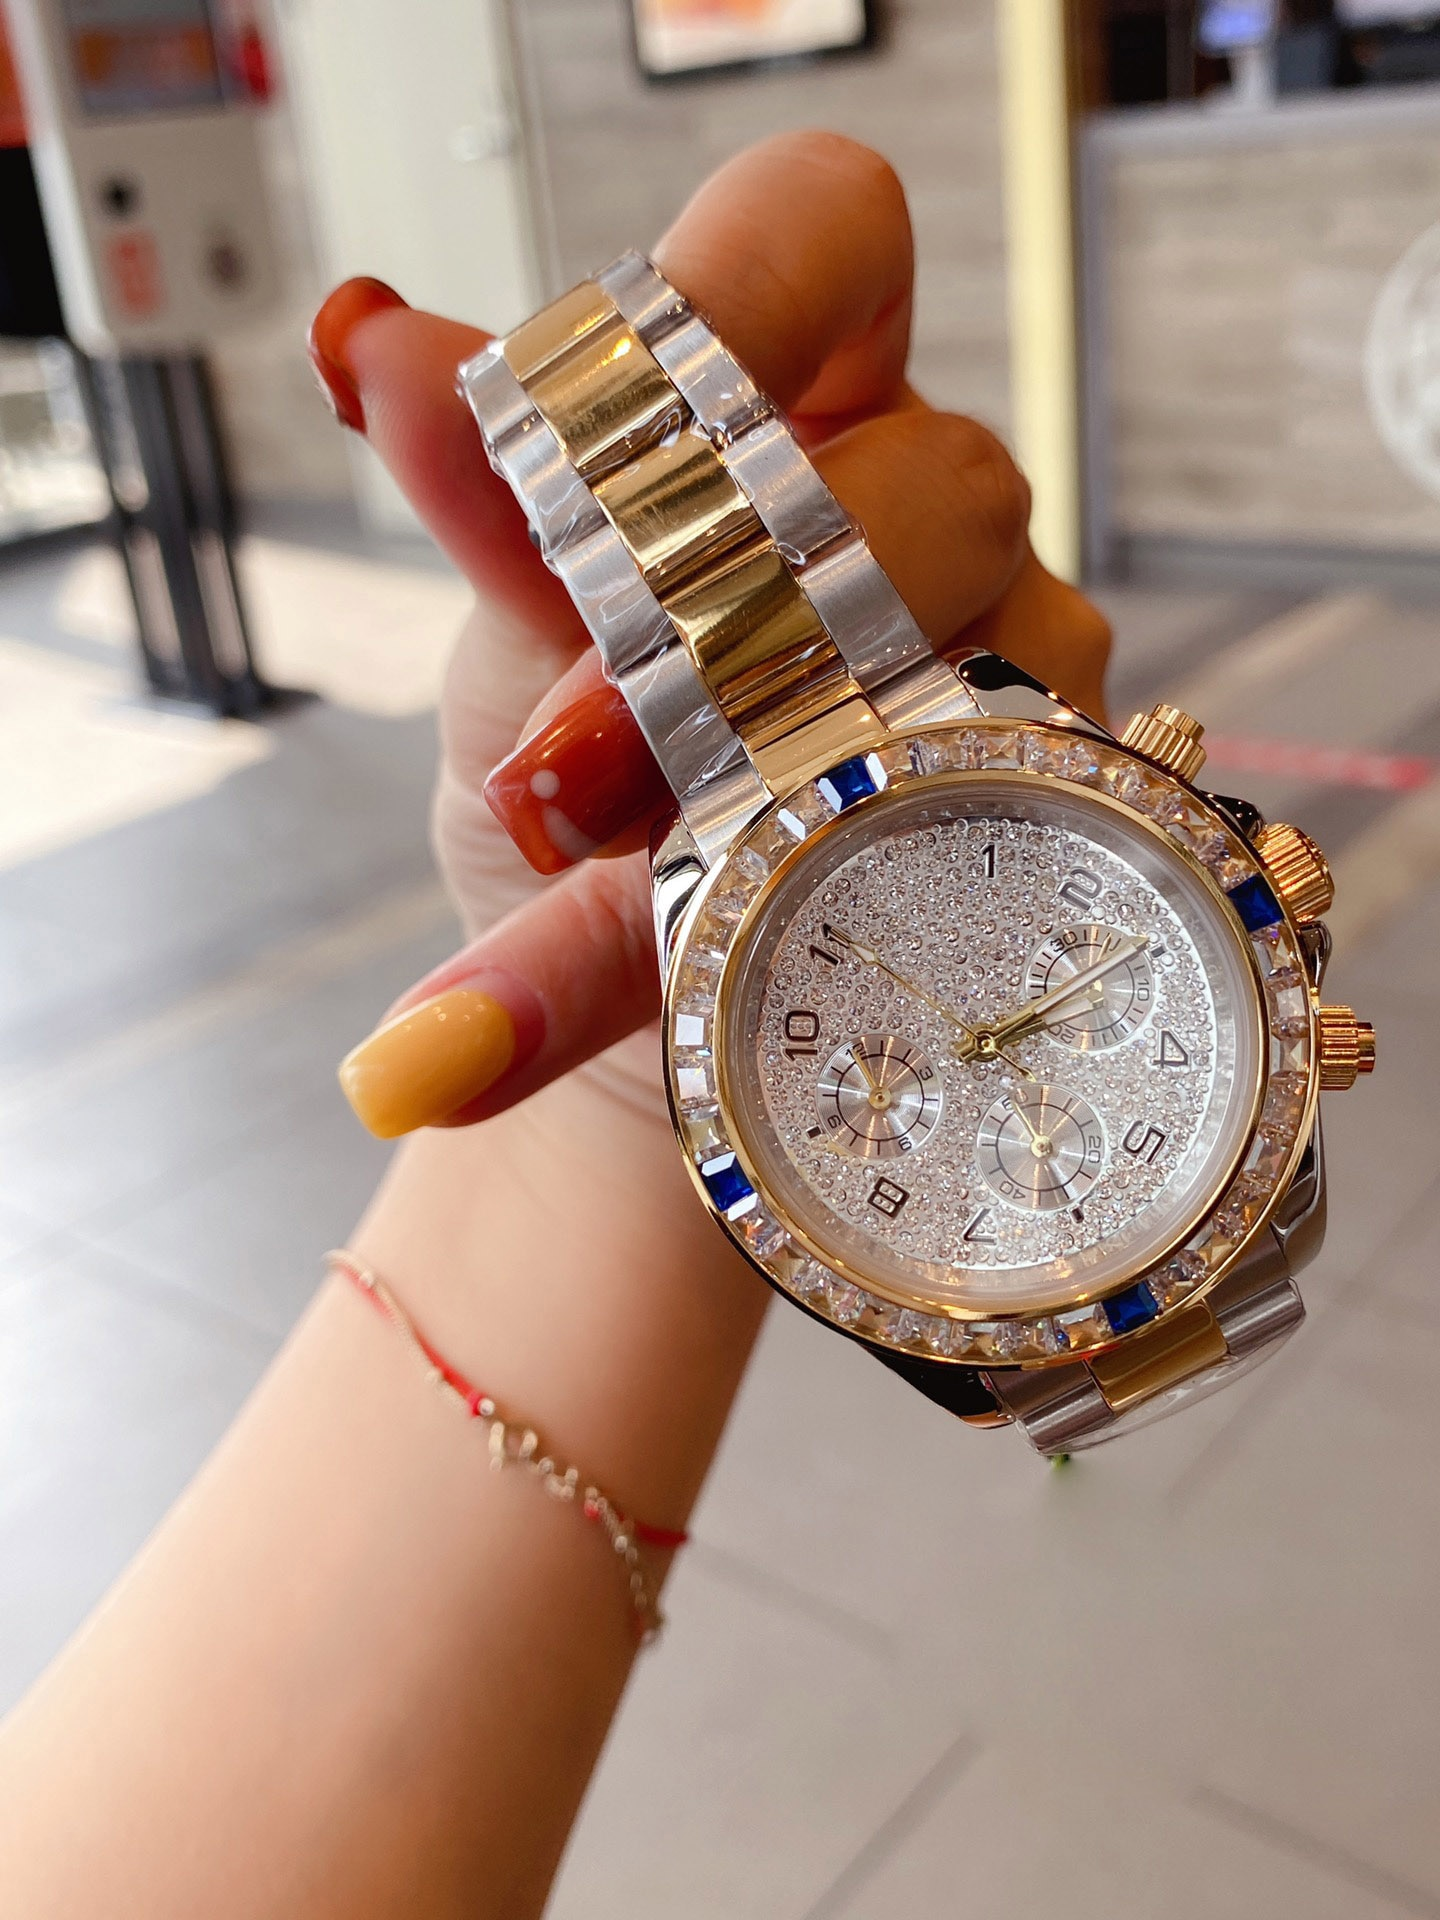 Hot-selling European and American famous brand luxury ladies watch cocktail party dressing quartz movement ladies watch enlarge